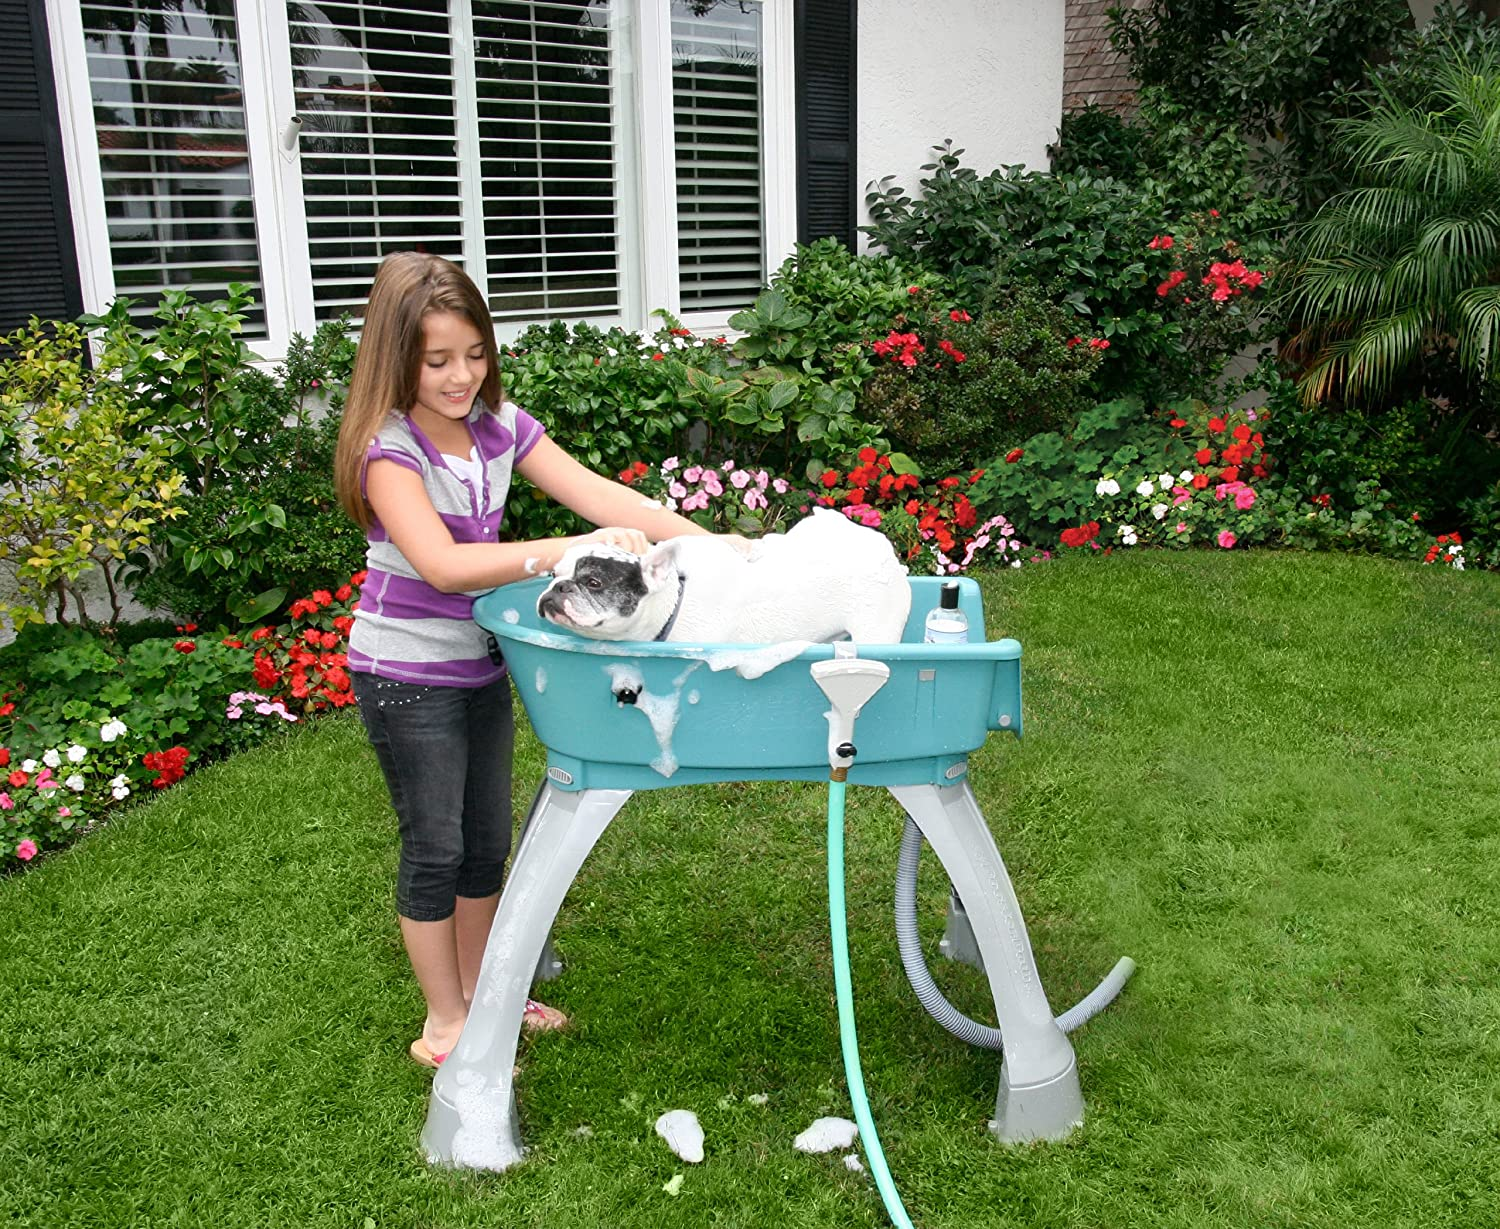 Amazon com   Booster Bath Elevated Pet Bathing Medium   Pet Shower And Bath  Supplies   Pet SuppliesAmazon com   Booster Bath Elevated Pet Bathing Medium   Pet Shower  . Dog Bathing Table. Home Design Ideas